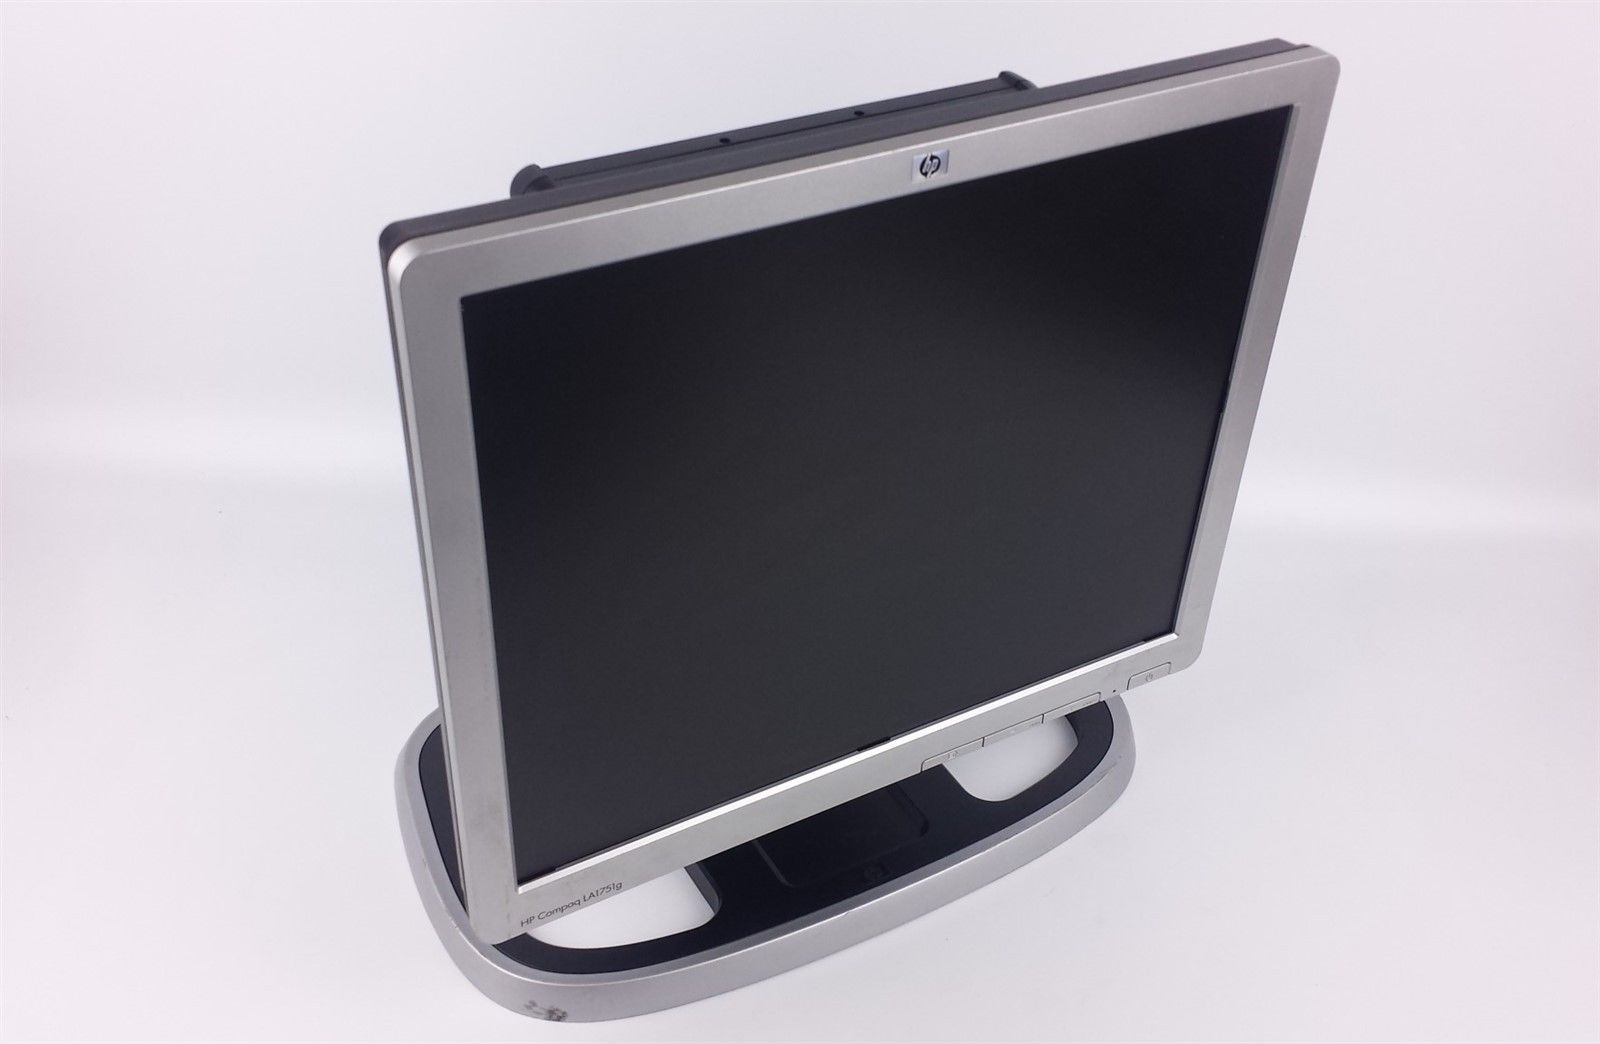 "HP Compaq LA1751g Flat Screen LCD Computer Monitor 17"" with Solid Stand"